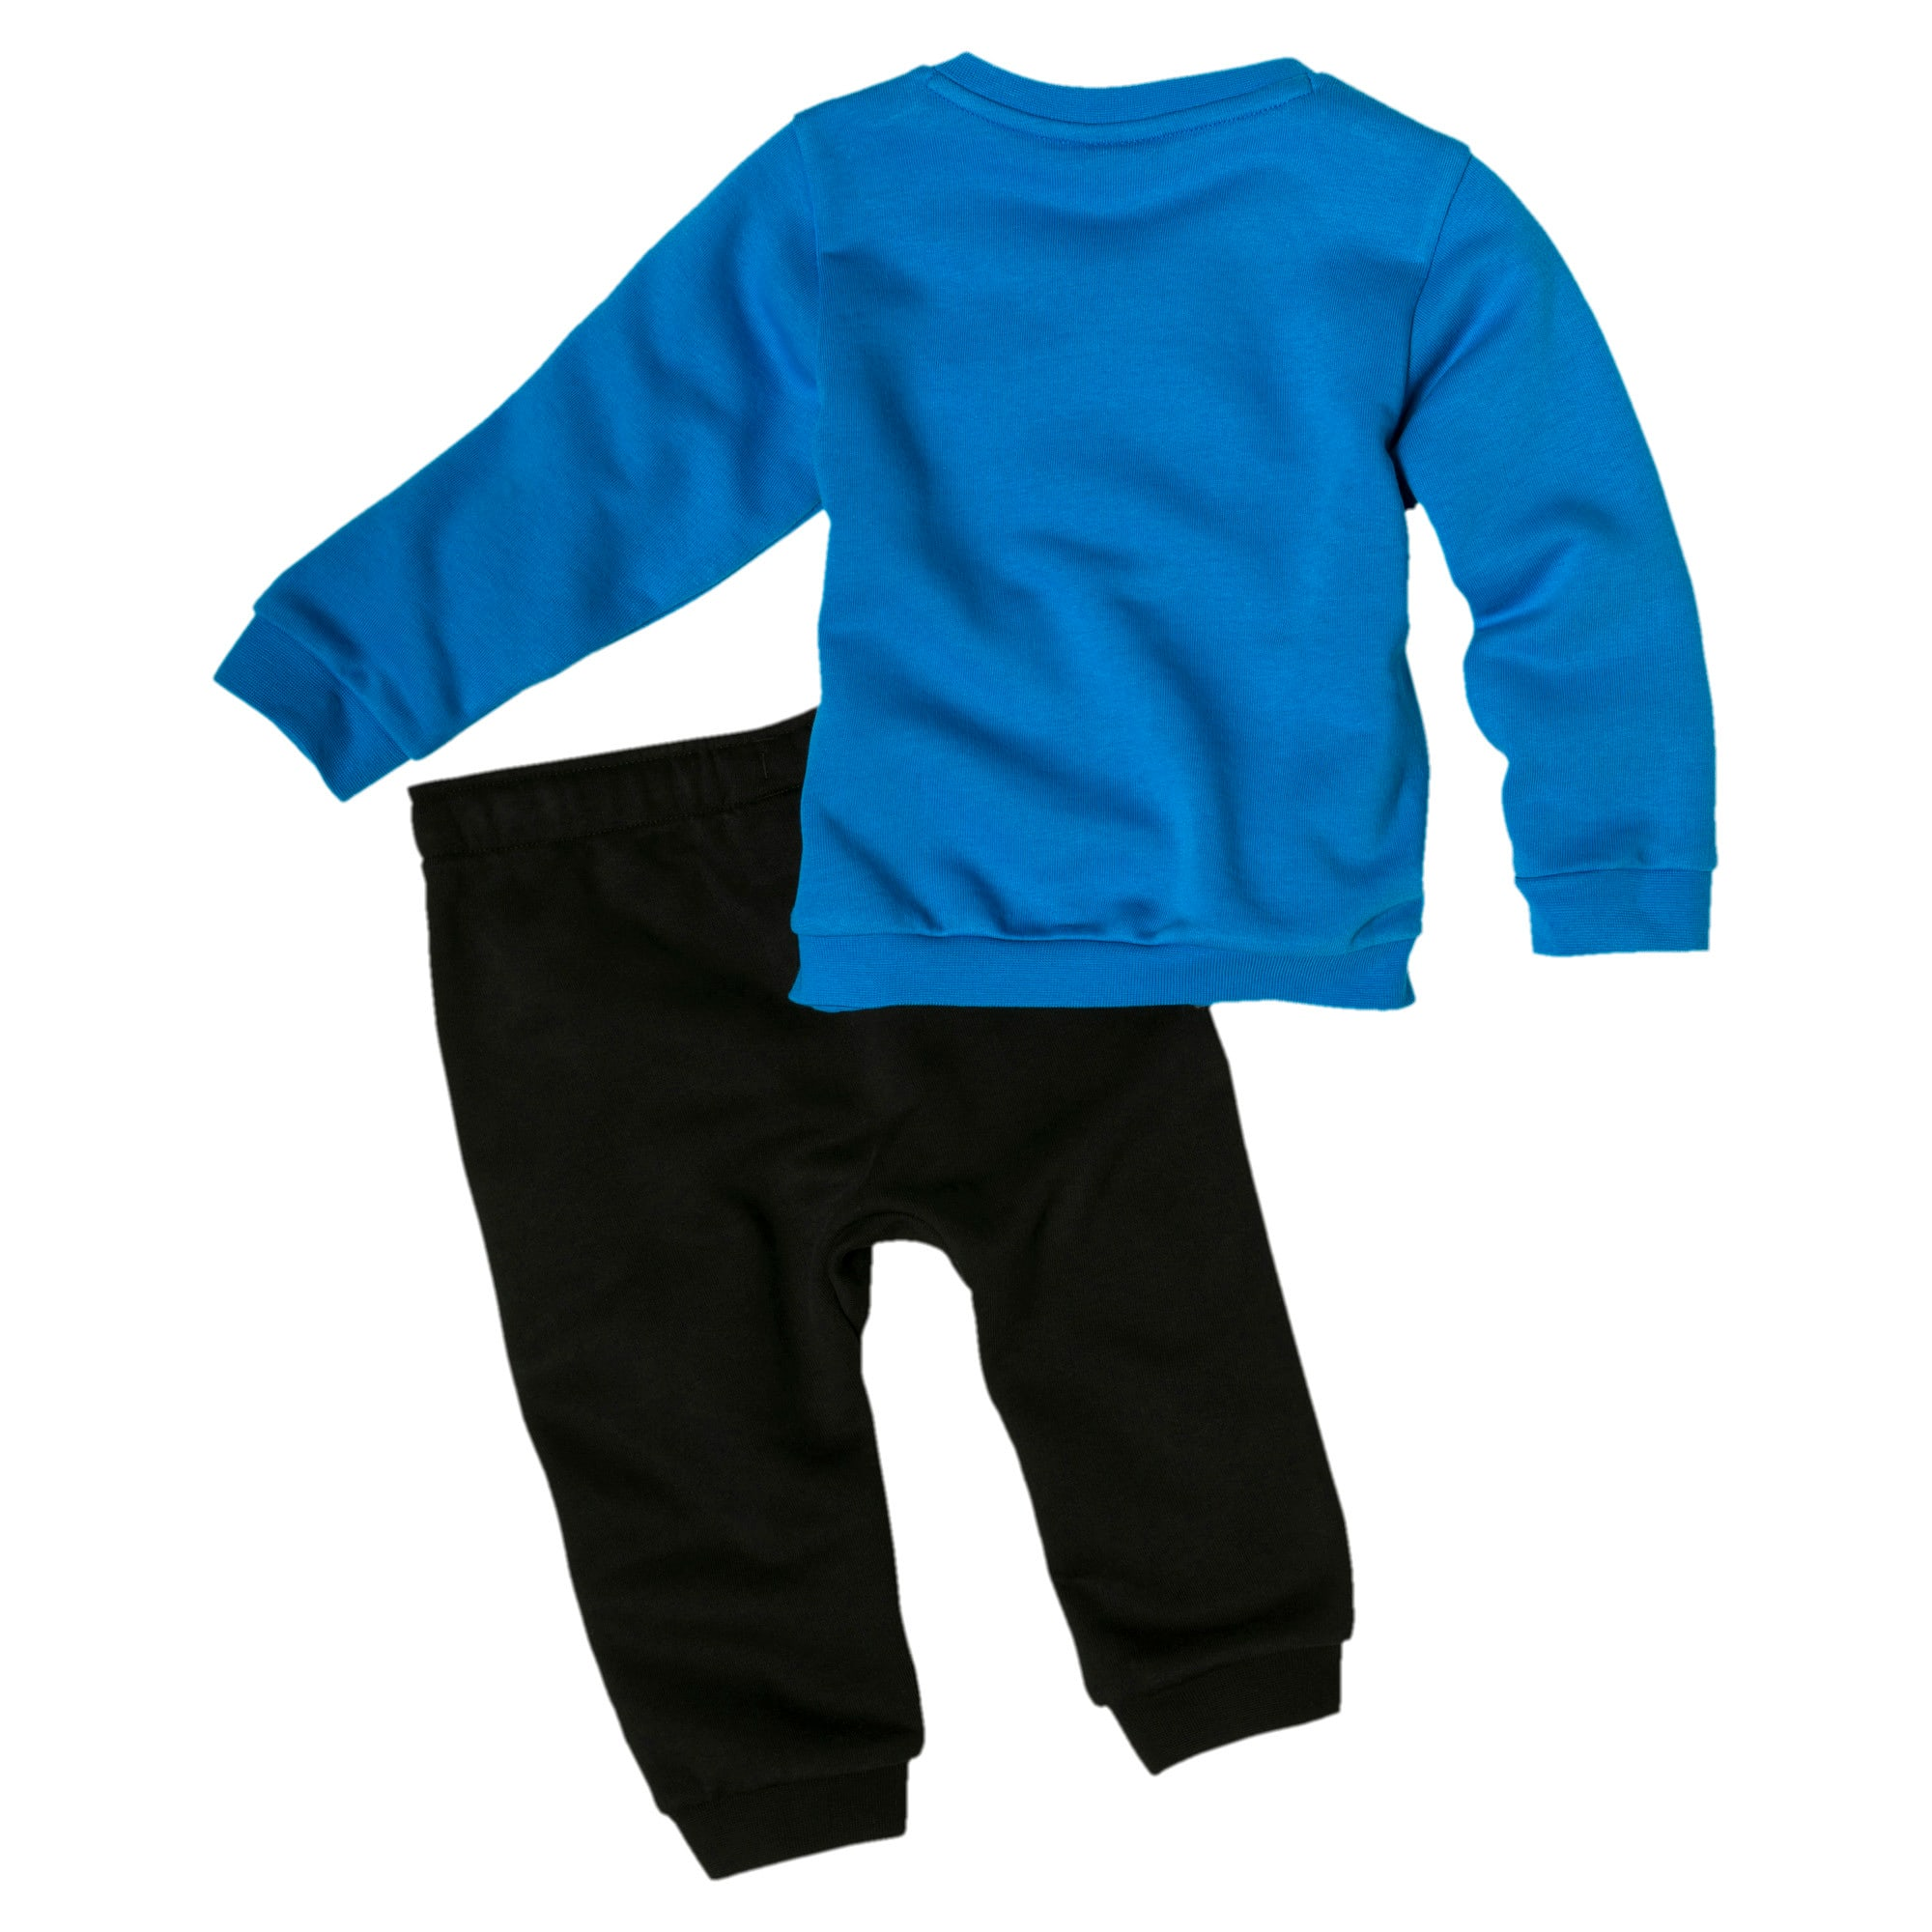 Thumbnail 2 of Minicats Essentials Babies' Jogger, Indigo Bunting, medium